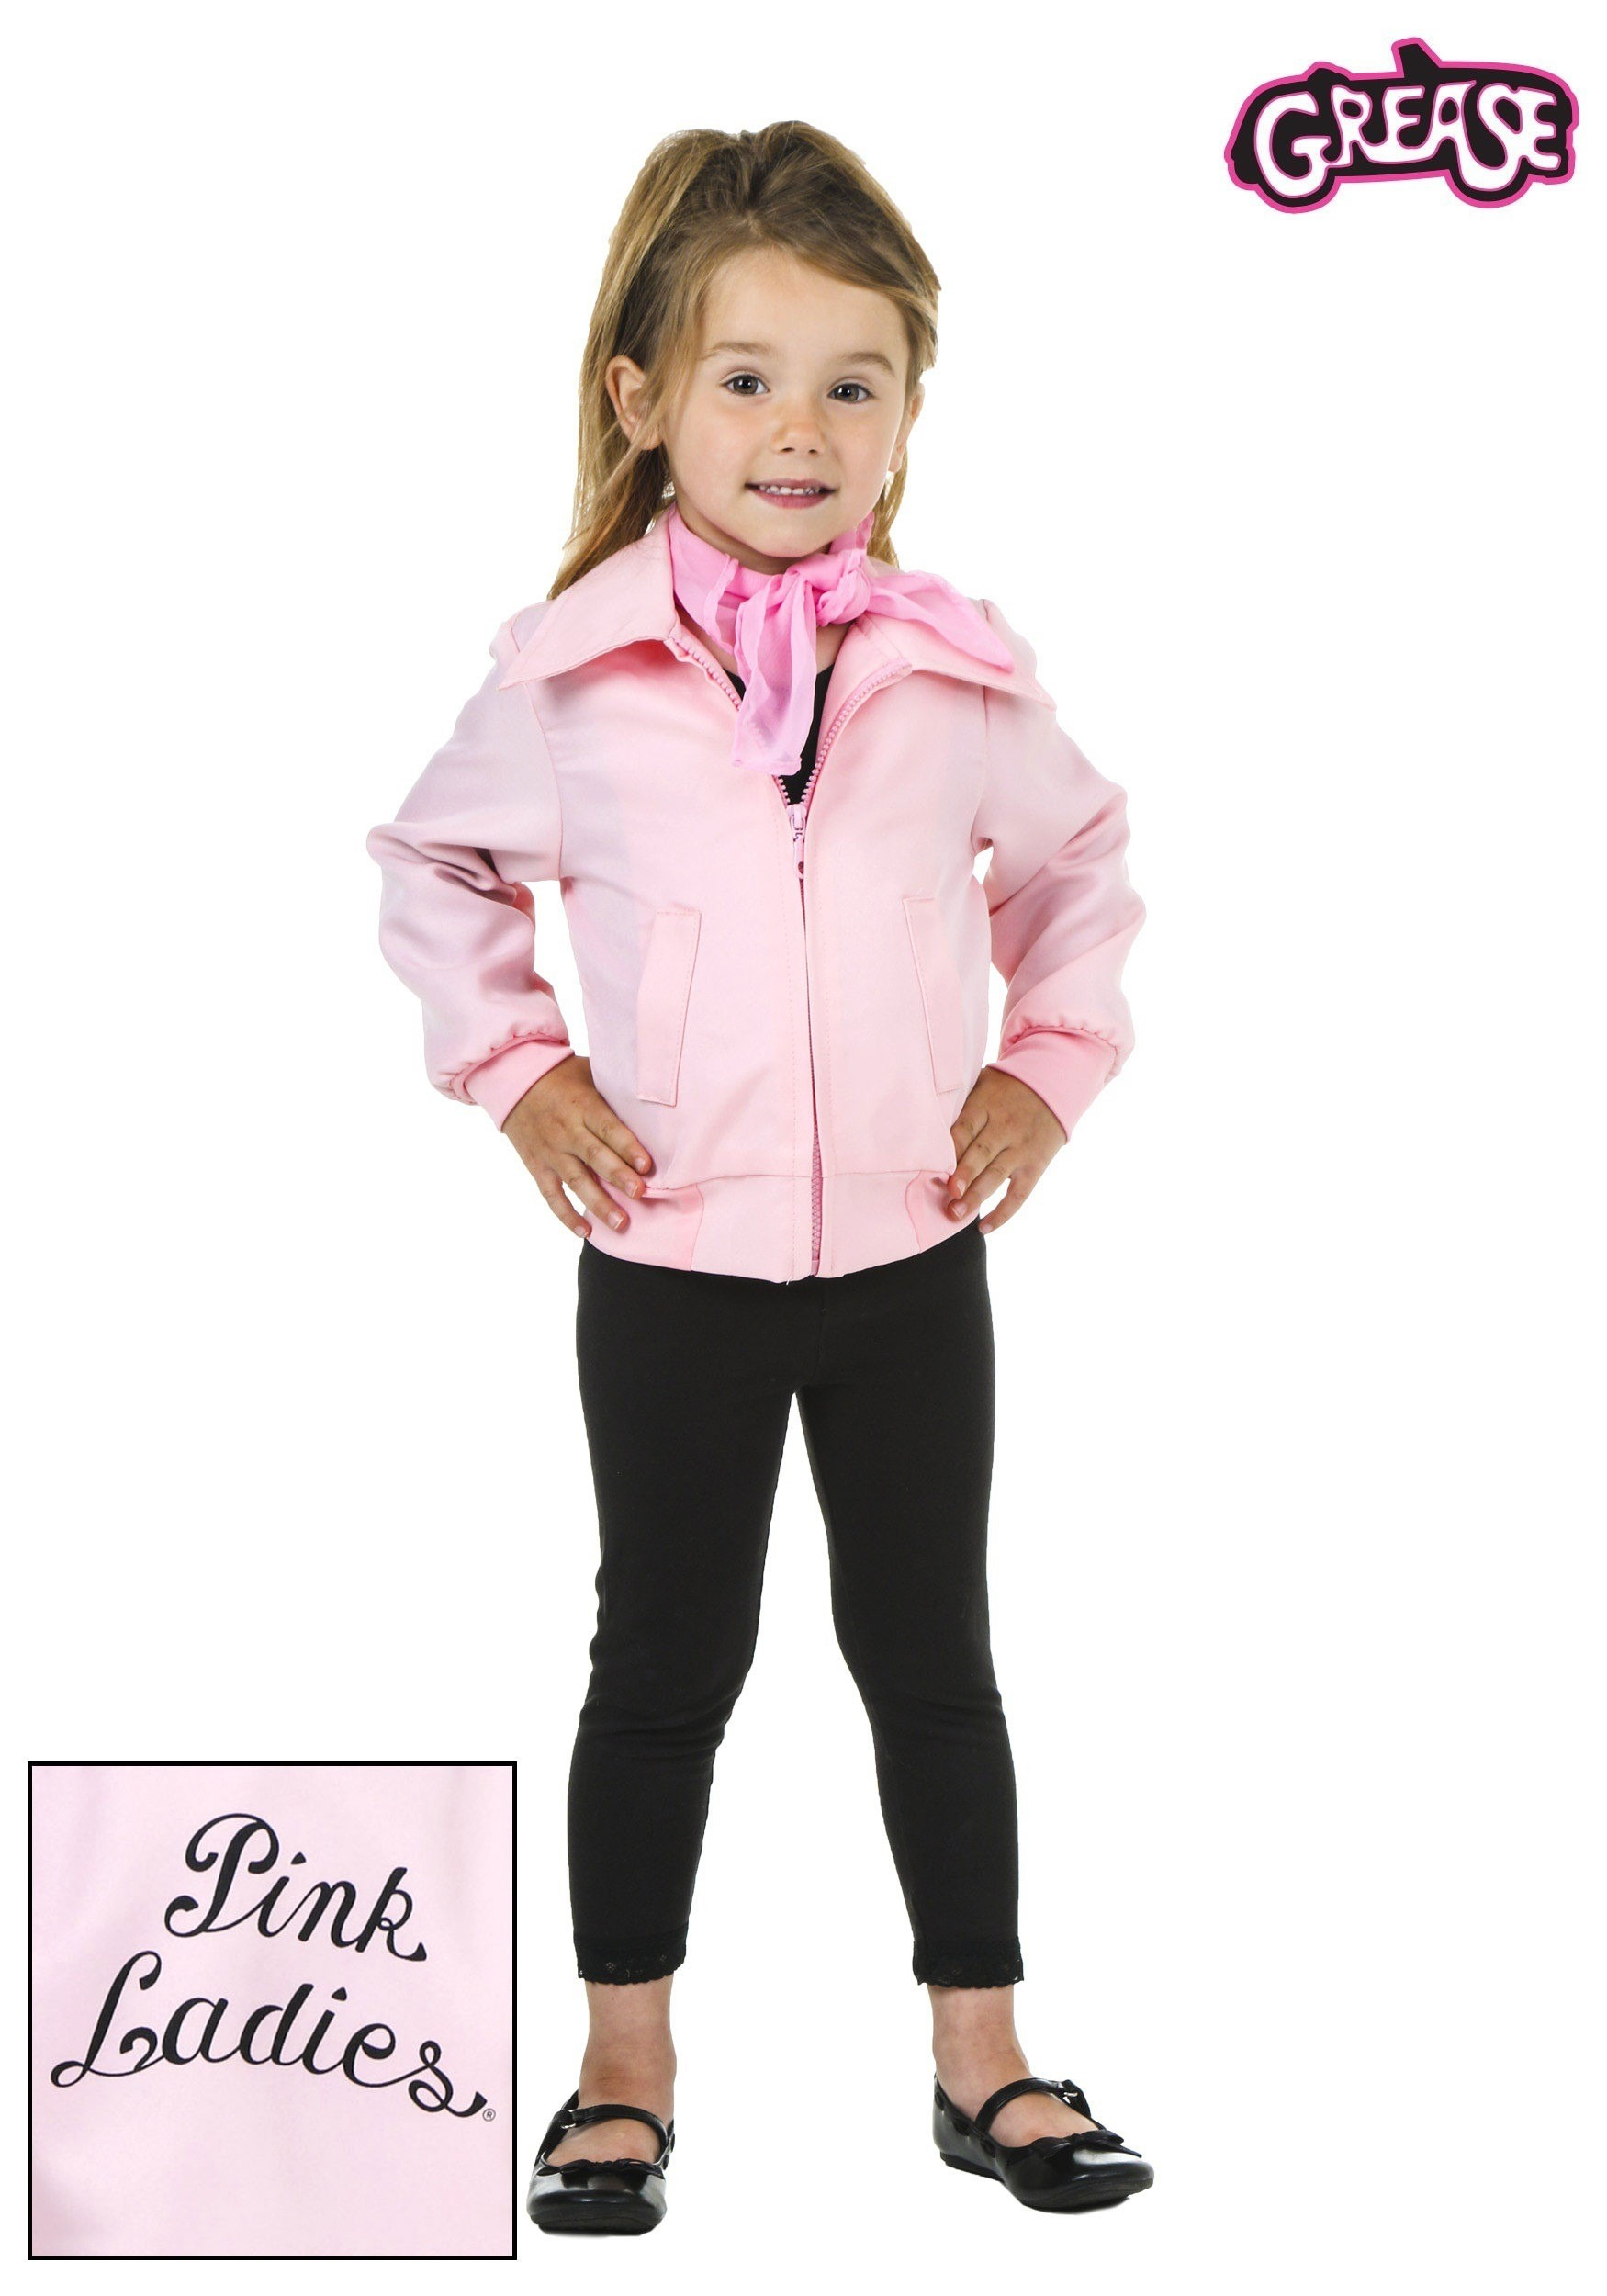 Deluxe Pink Ladies Jacket for Toddlers